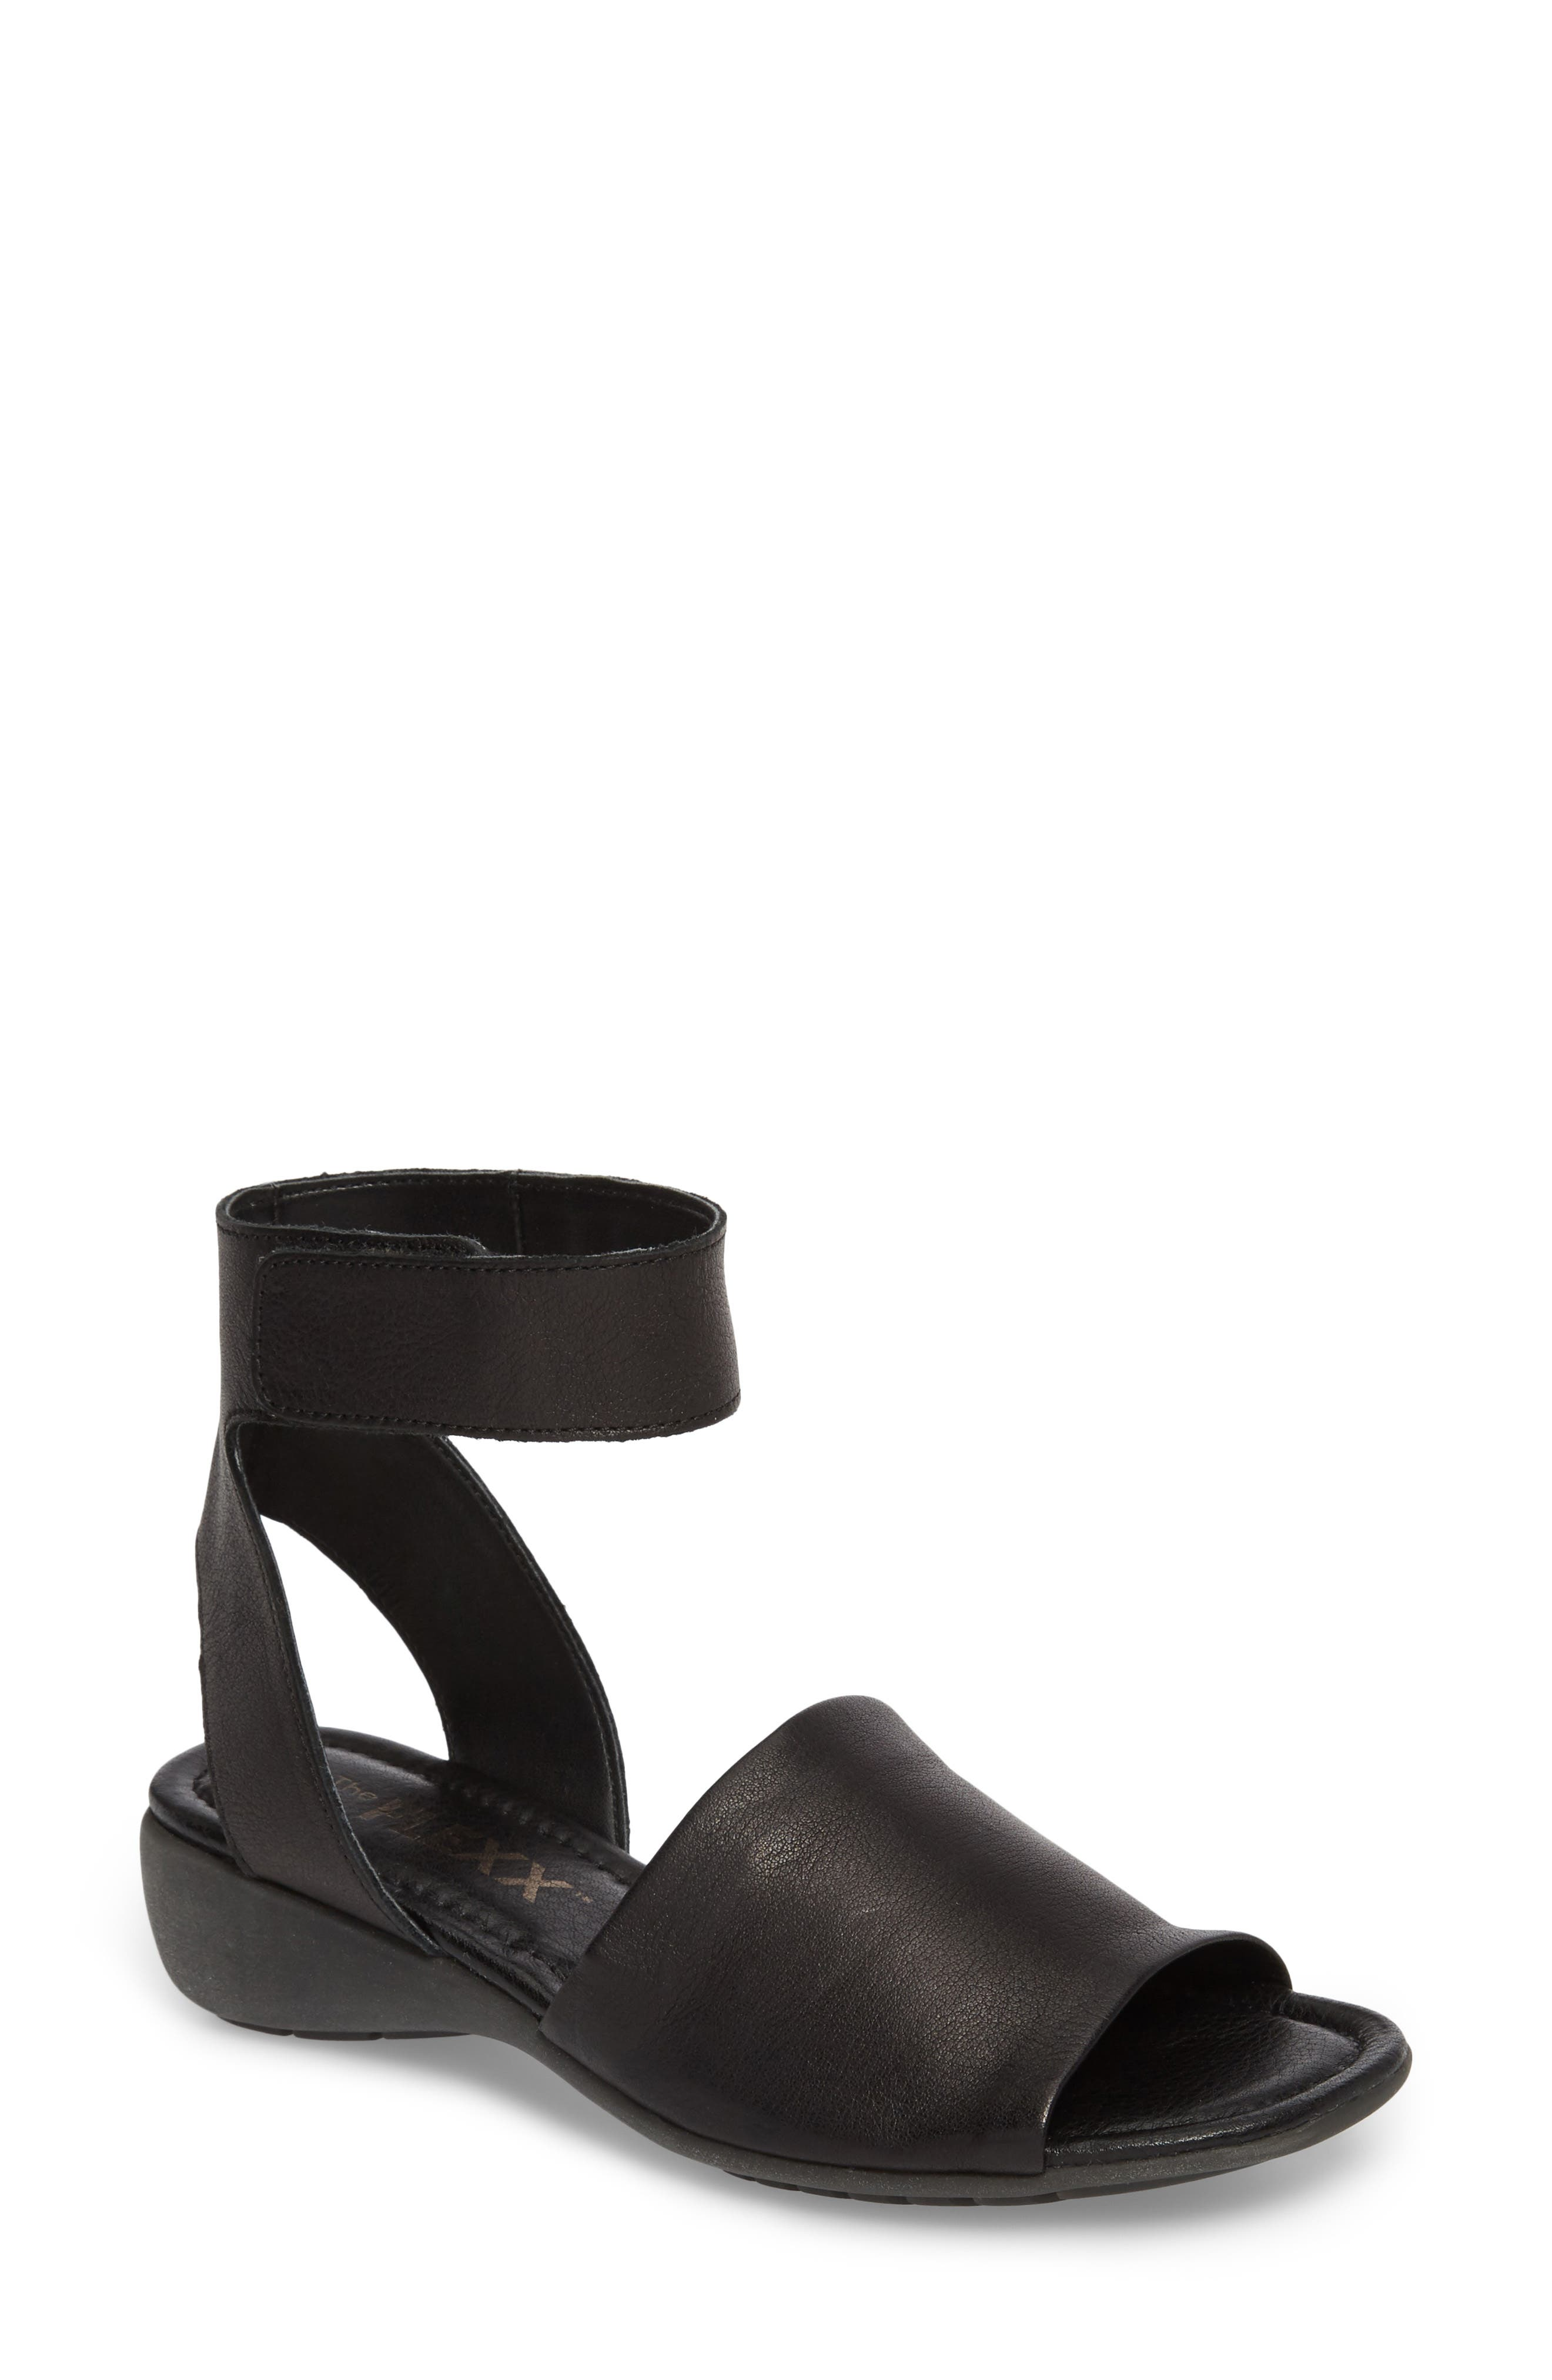 'Beglad' Leather Ankle Strap Sandal,                         Main,                         color, BLACK VACHETTA LEATHER